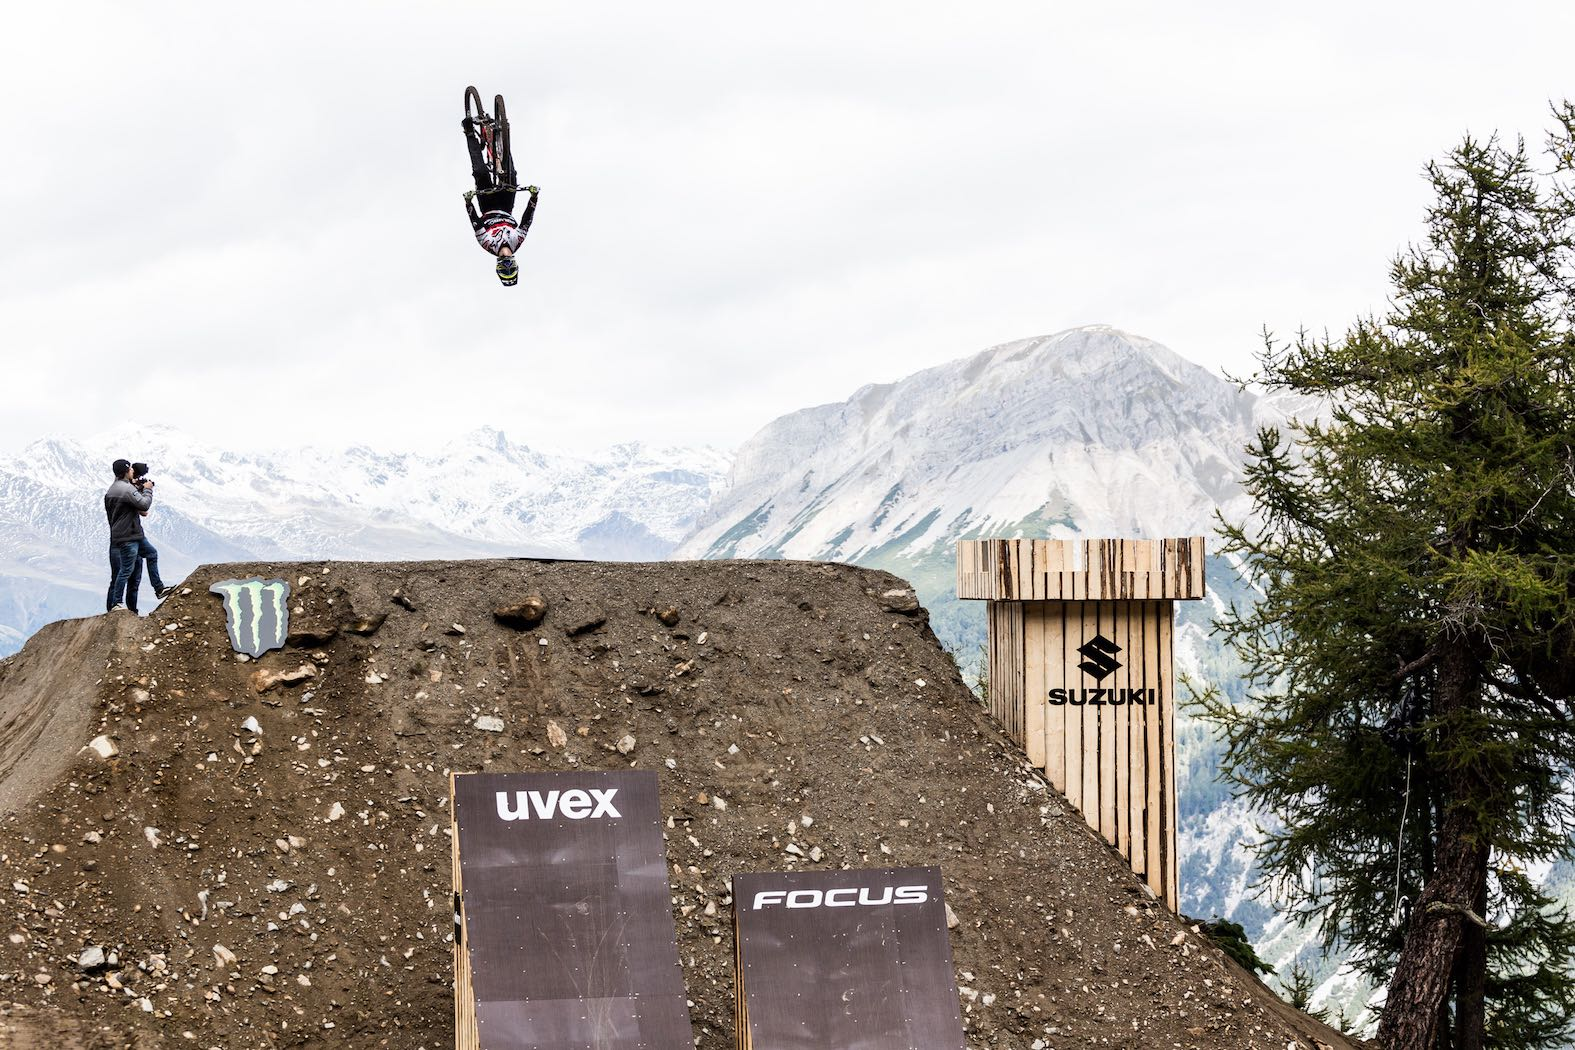 Sam Reynolds backflipping the Nine Knights course